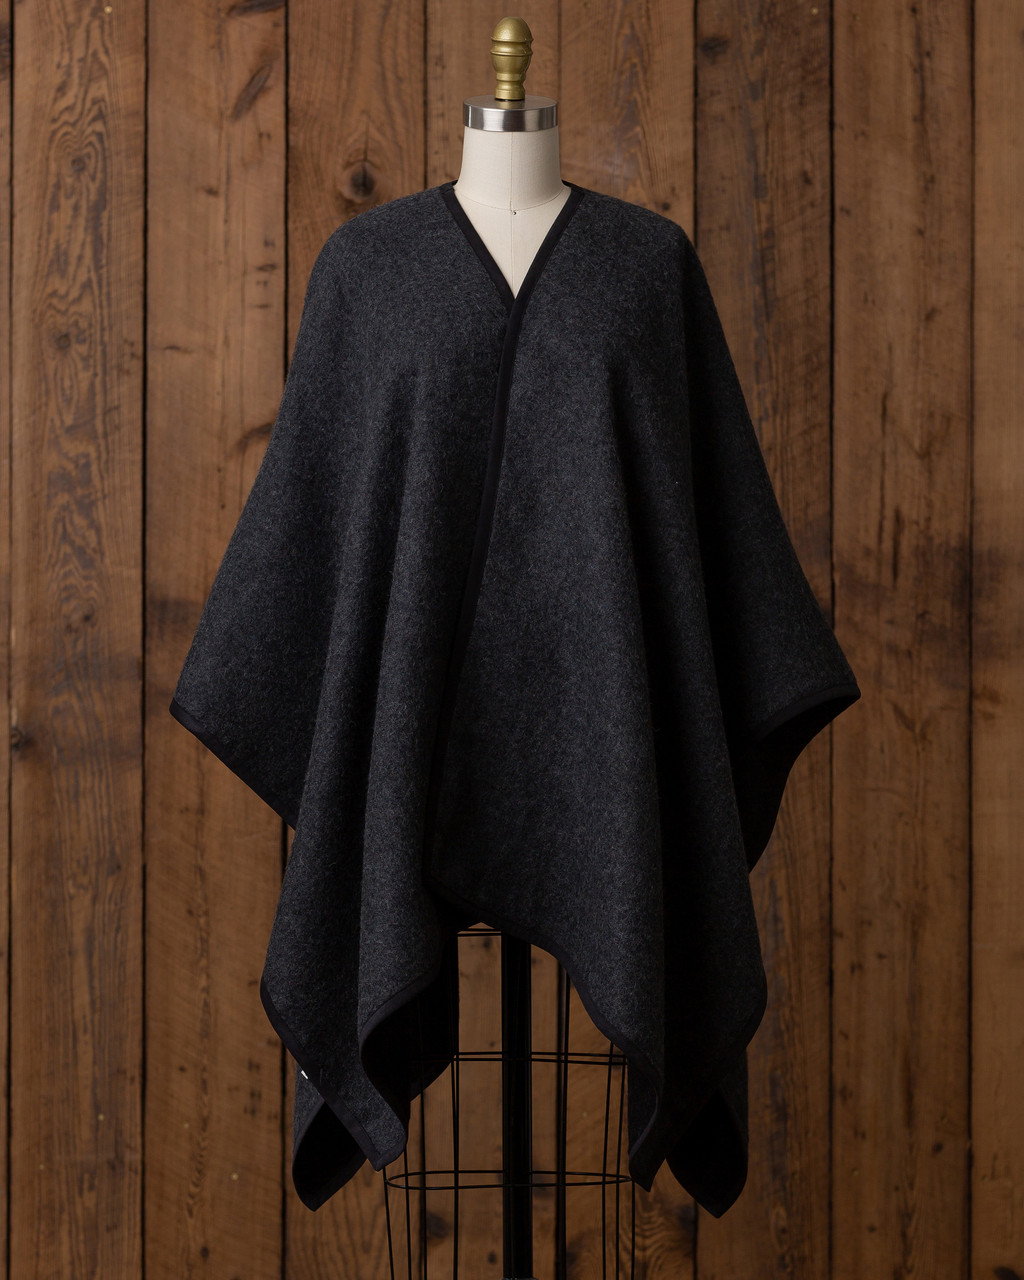 Alicia Adams Alpaca Vienna Cape, alpaca poncho cape for women, alpaca poncho, alpaca poncho womens, alpaca vs cashmere, black and charcoal womens cape